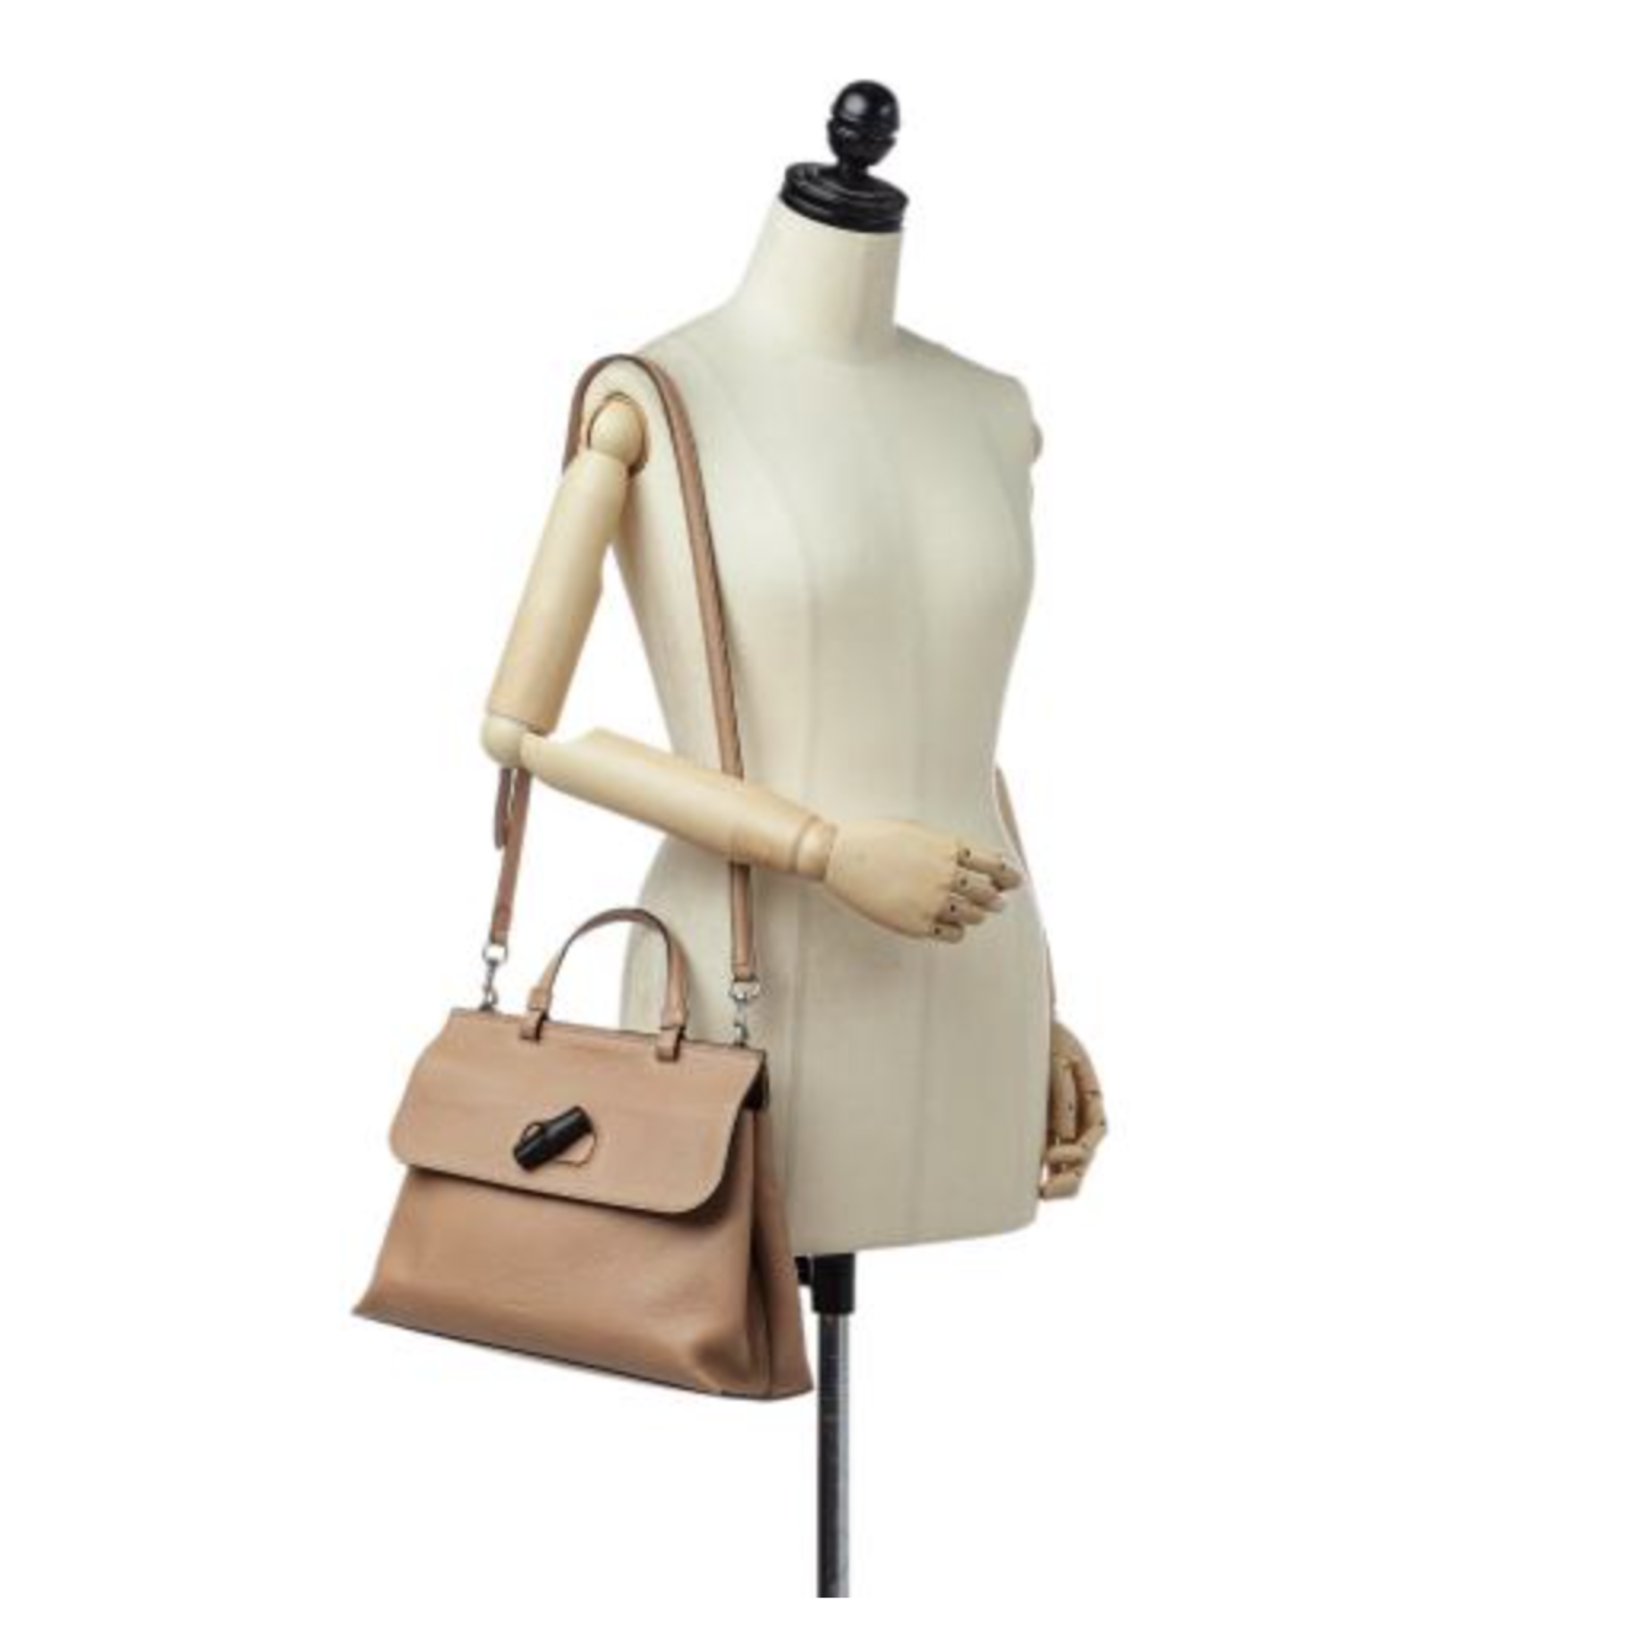 Wyld Blue Vintage Gucci Bamboo Daily Leather 2Way Bag Hand Bag Beige